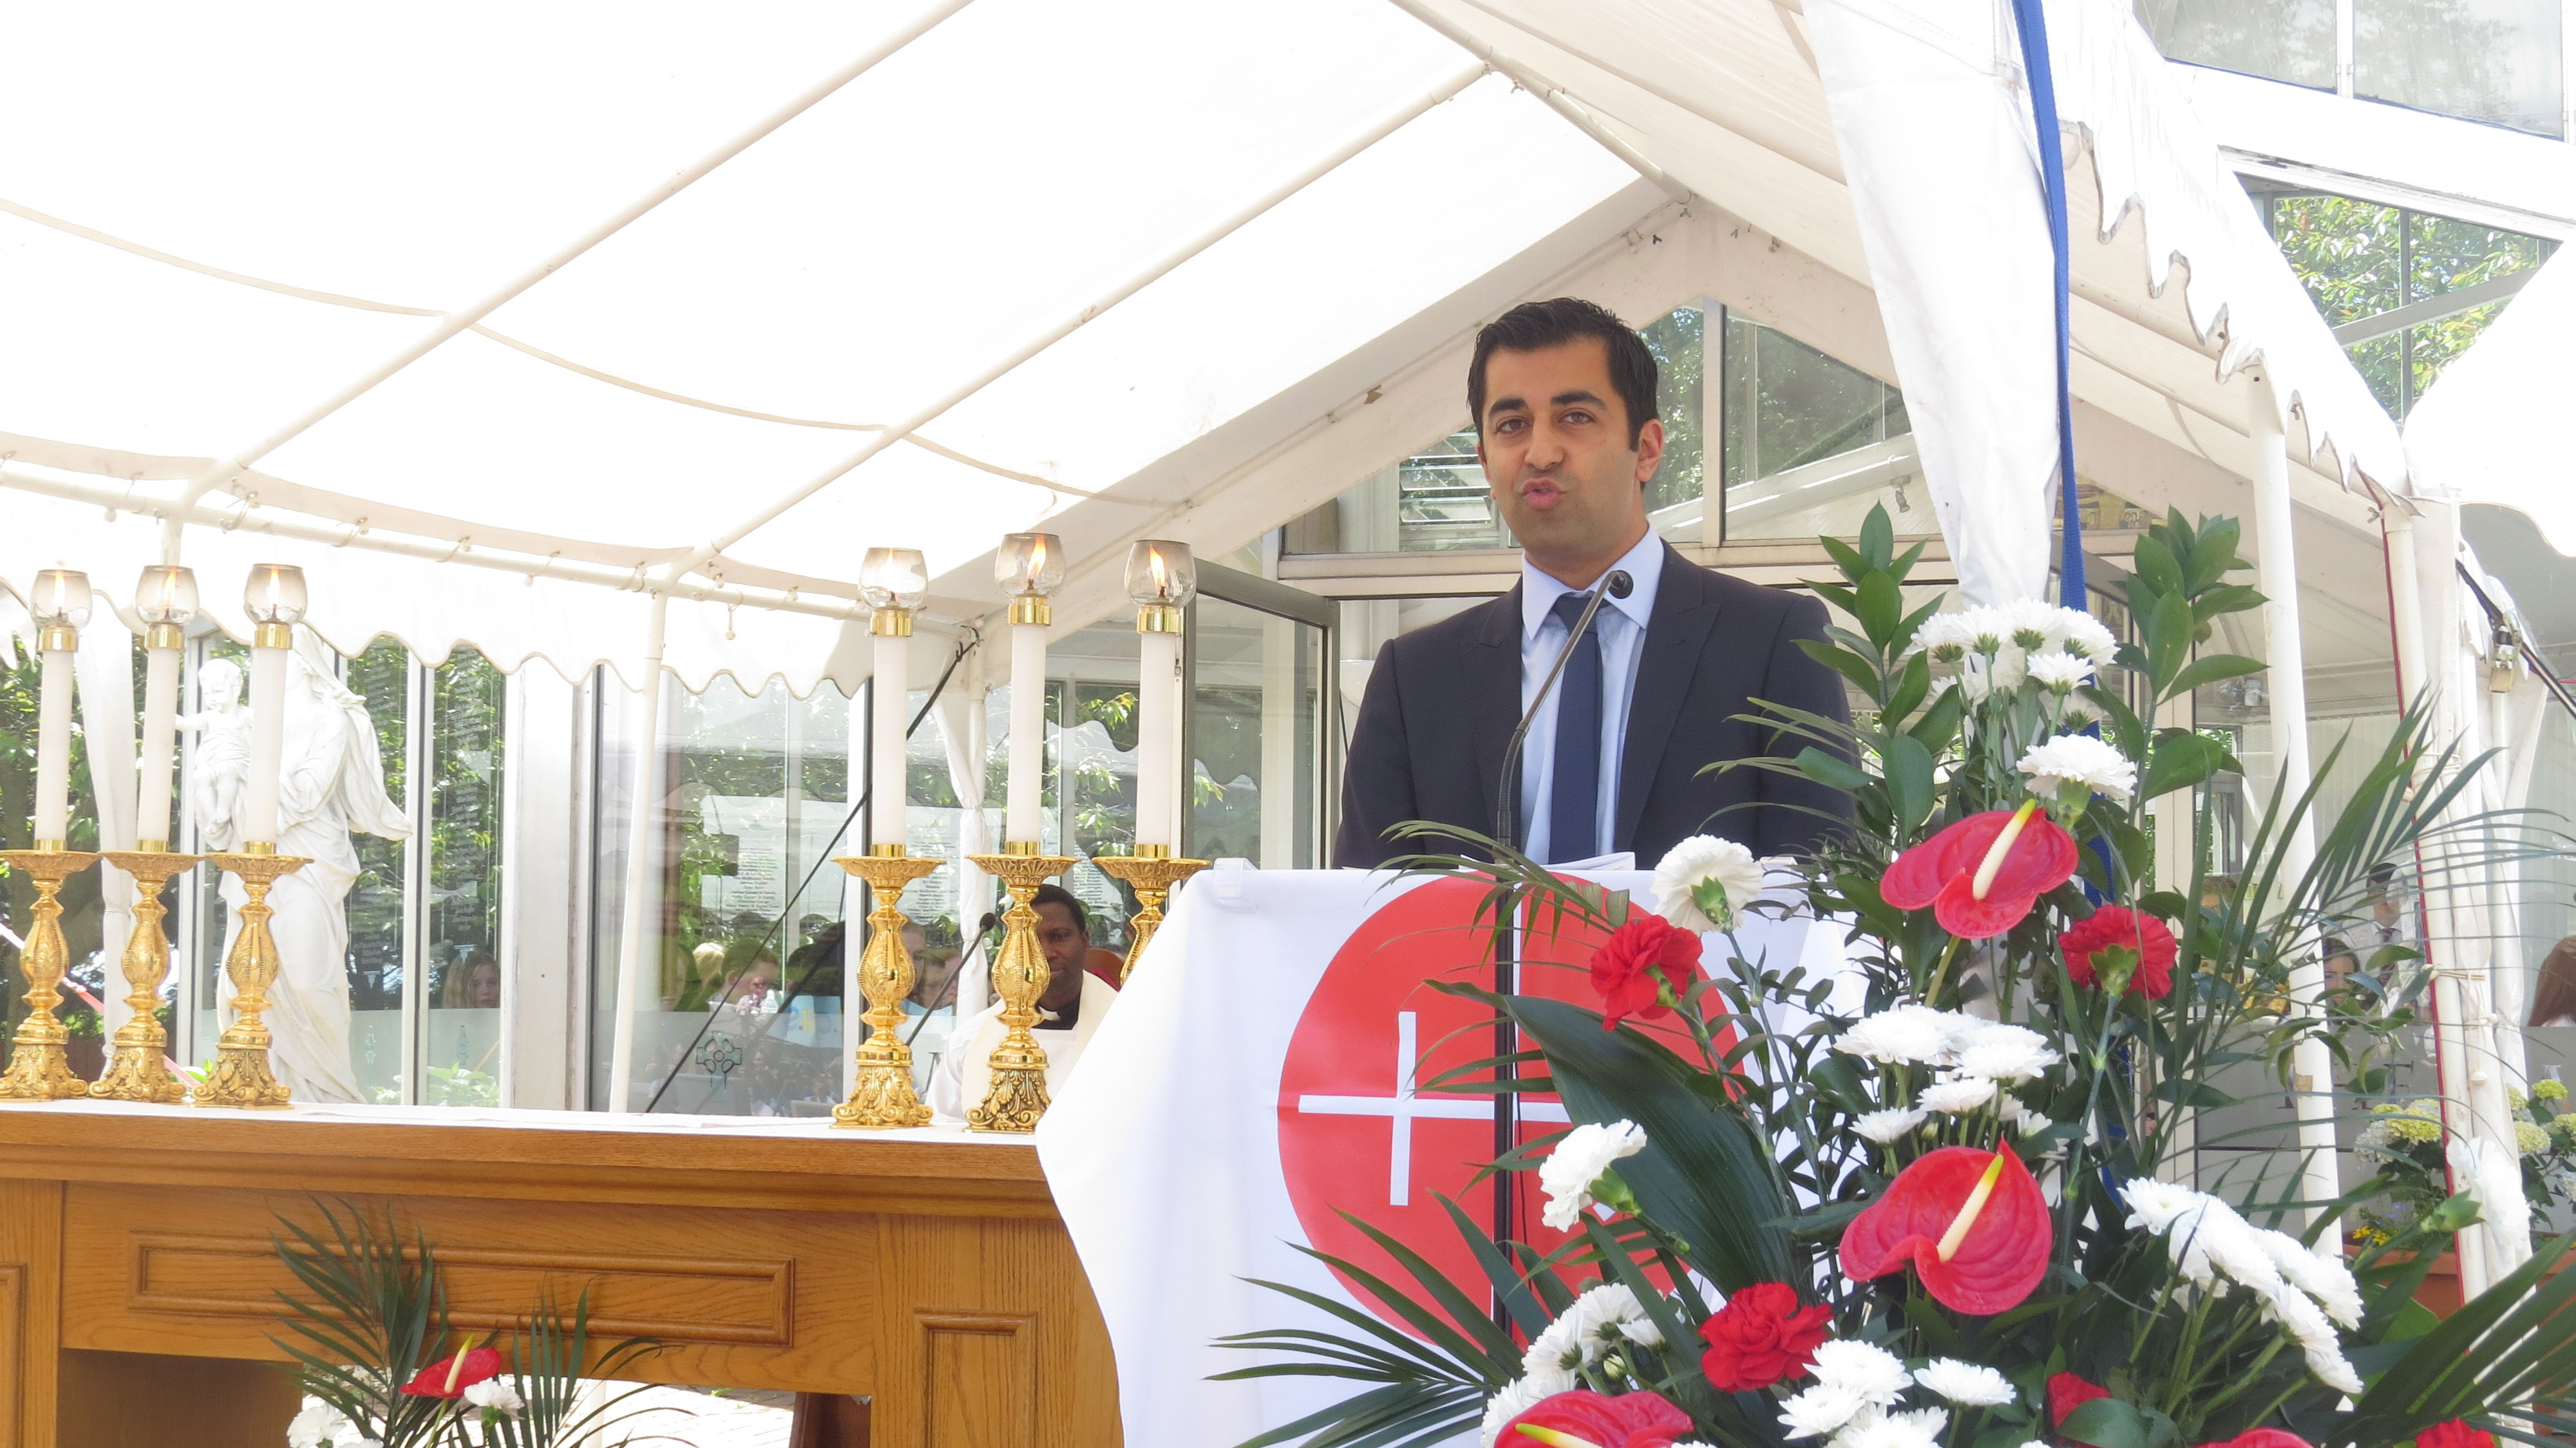 Humza Yousaf, MSP speaking at ACN youth rally in Scotland (© Aid to the Church in Need)